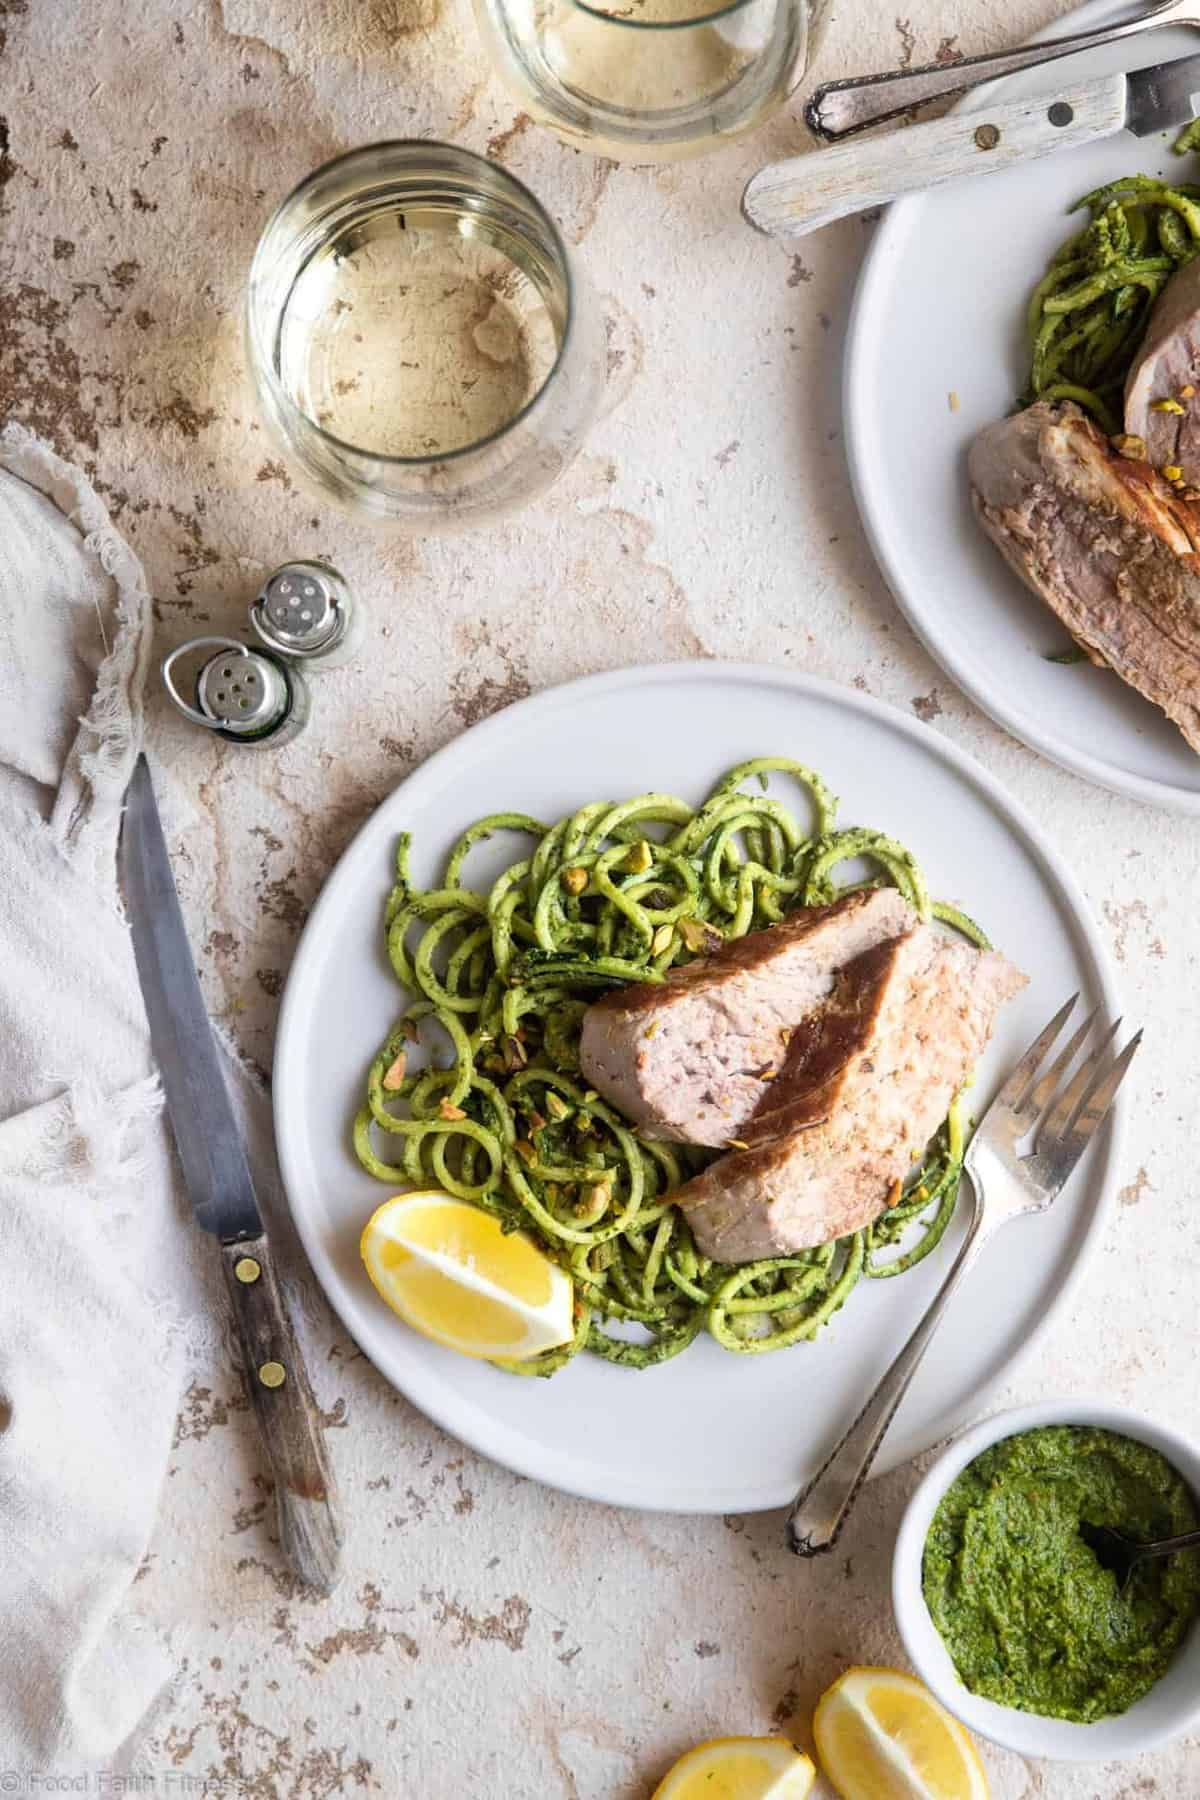 Keto Low Carb Pork Tenderloin with Pistachio Pesto - This easy, healthy, paleo friendly baked Pork Tenderloin has a delicious, creamy pistachio pesto! A low carb, sugar free weeknight meal that everyone will enjoy! | #Foodfaithfitness |